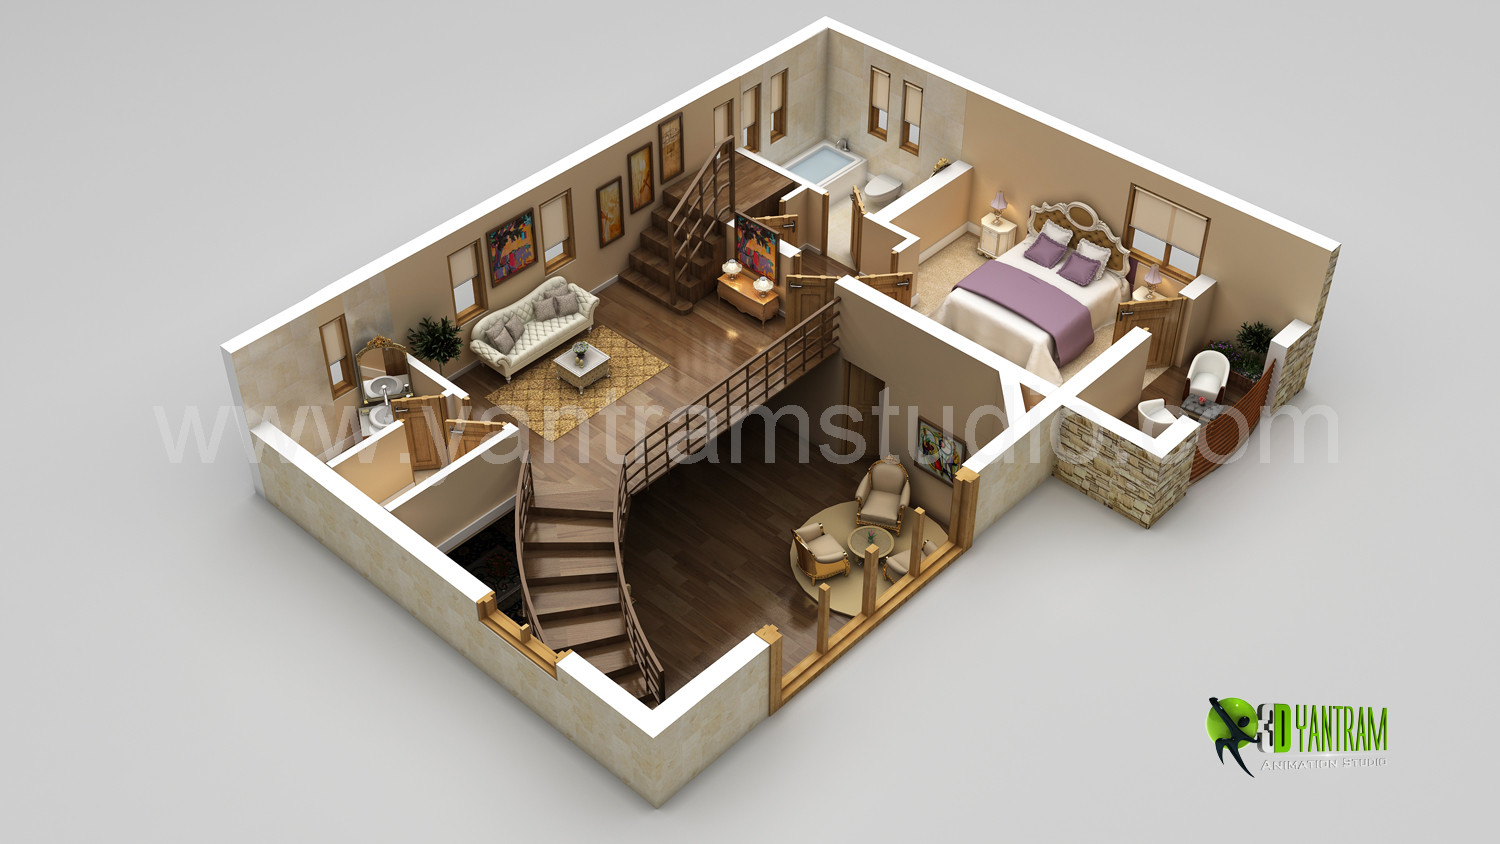 Studio Plans And Designs artstation - the best modern 3d floor plan rendering - california